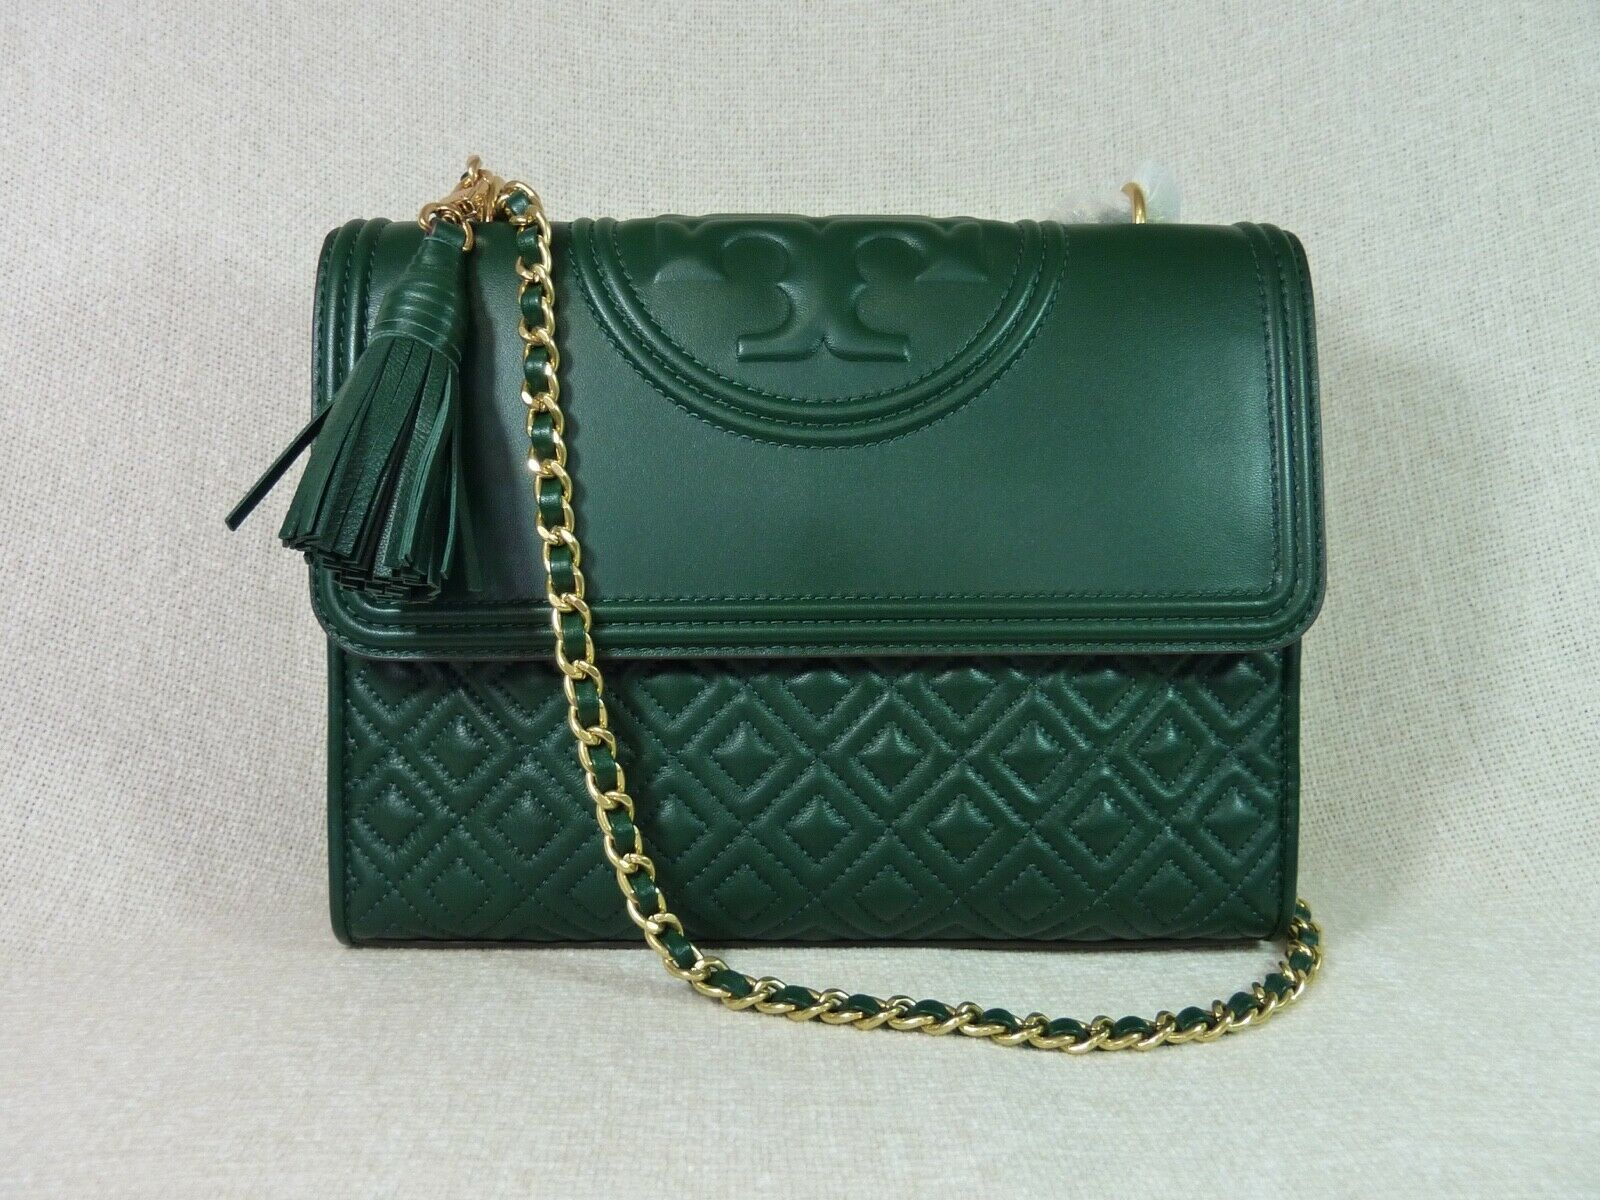 NWT Tory Burch Norwood Leather Fleming Convertible Bag $498 image 1